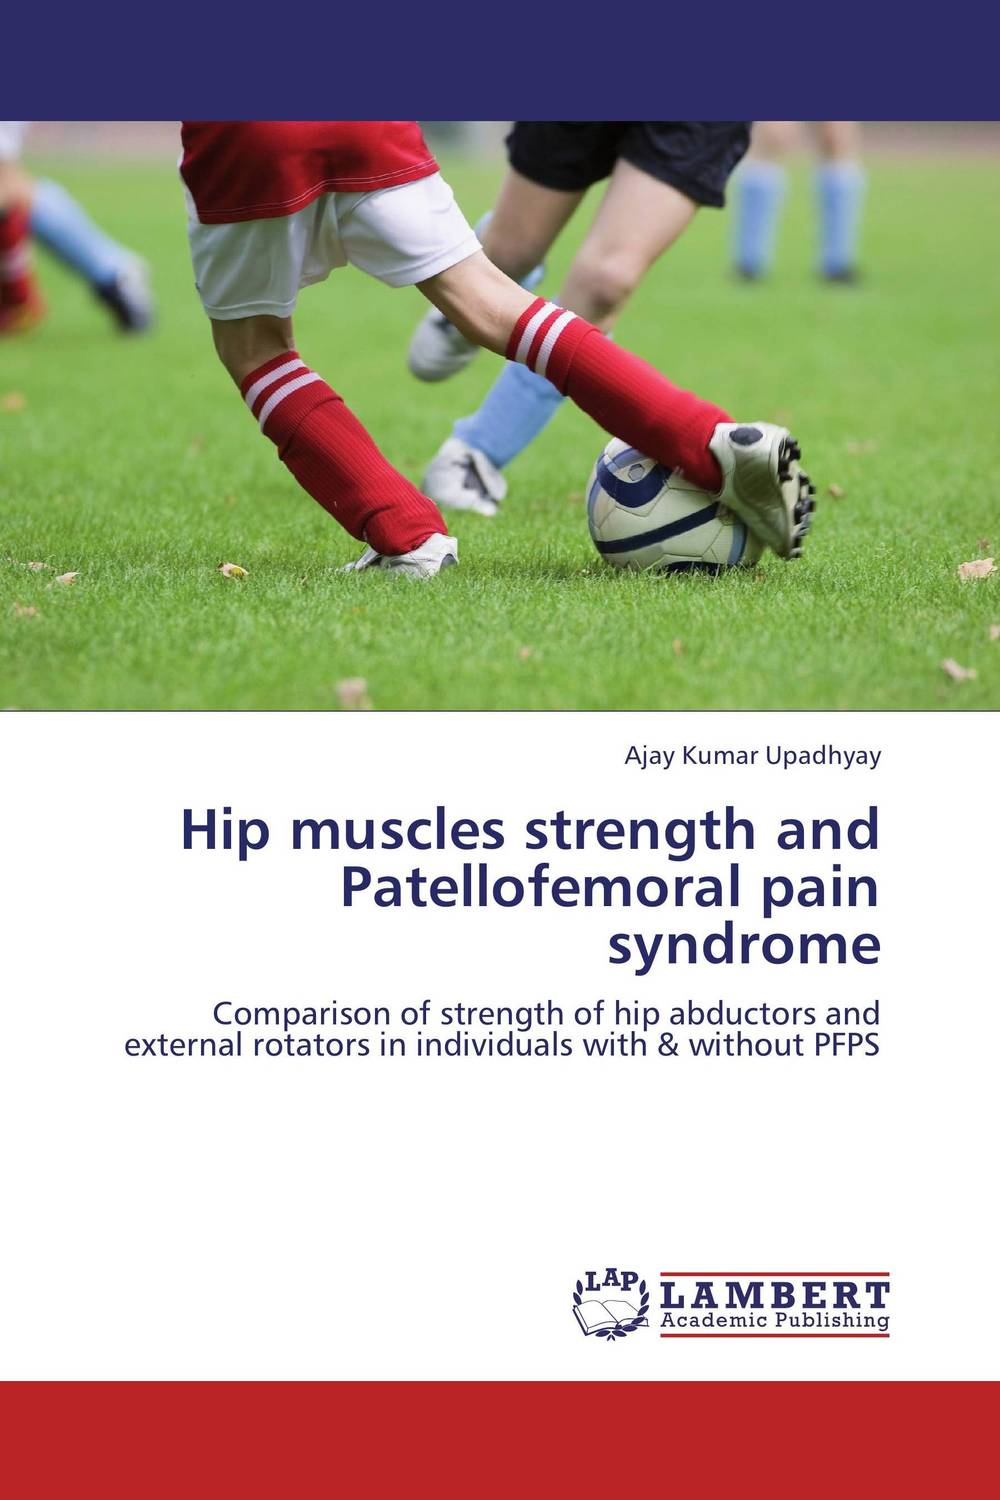 Hip muscles strength and Patellofemoral pain syndrome analgesia in patients with hip fracture